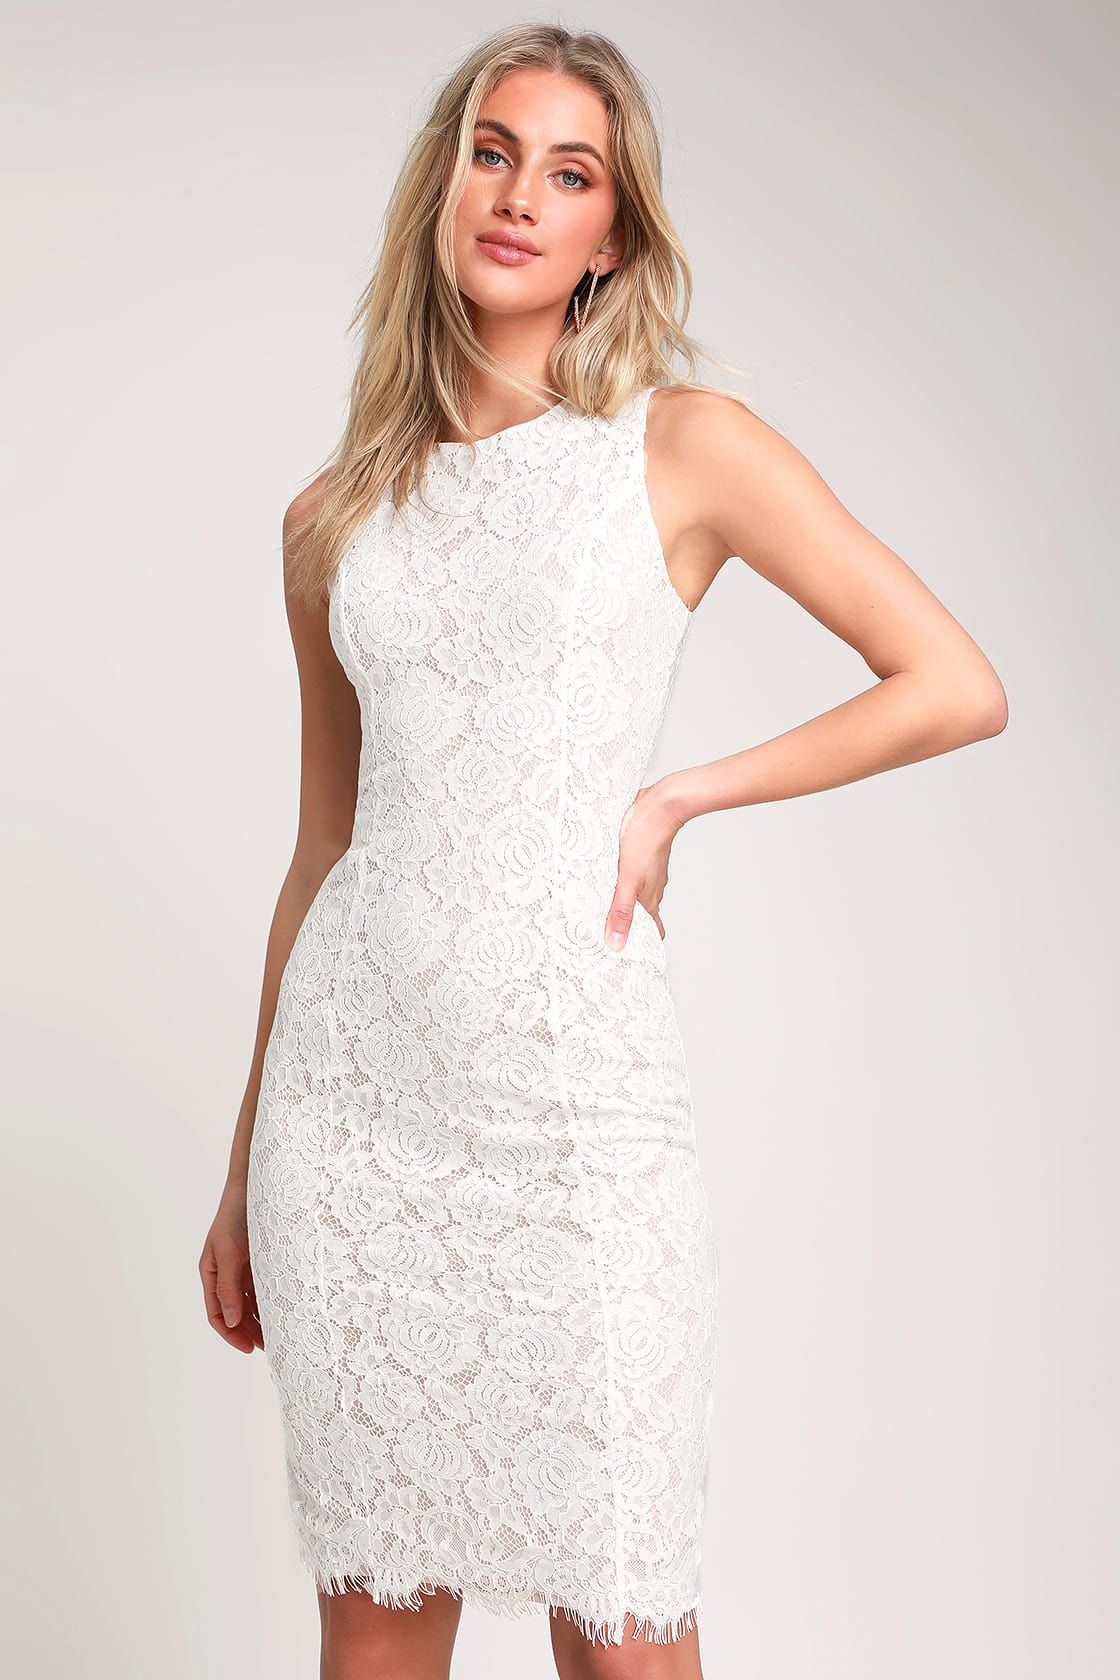 32++ White lace sleeveless dress ideas in 2021